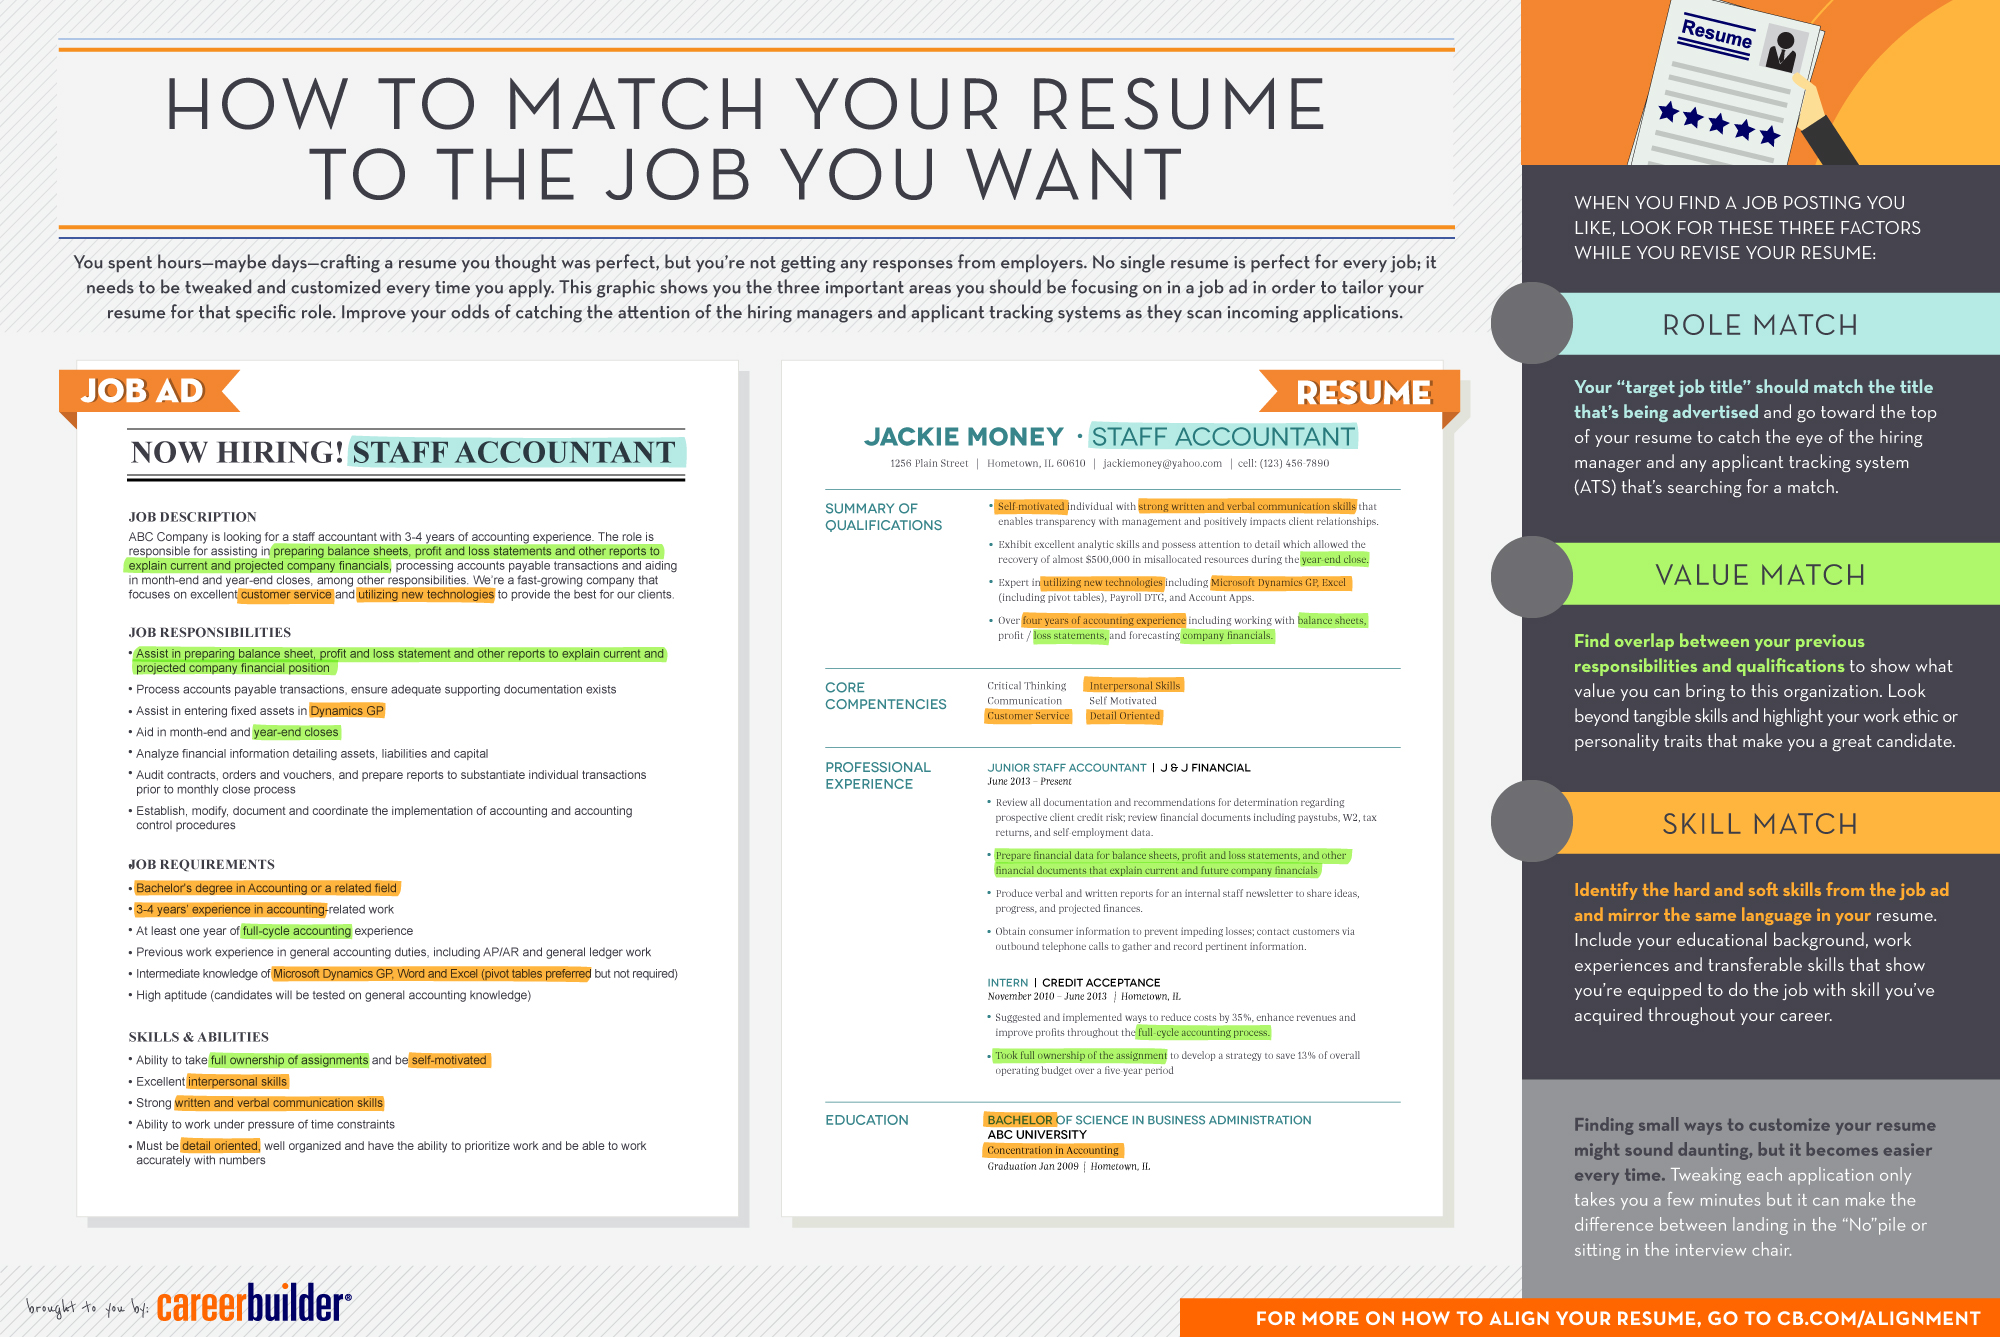 How To Match Your Resume To The Job You Want